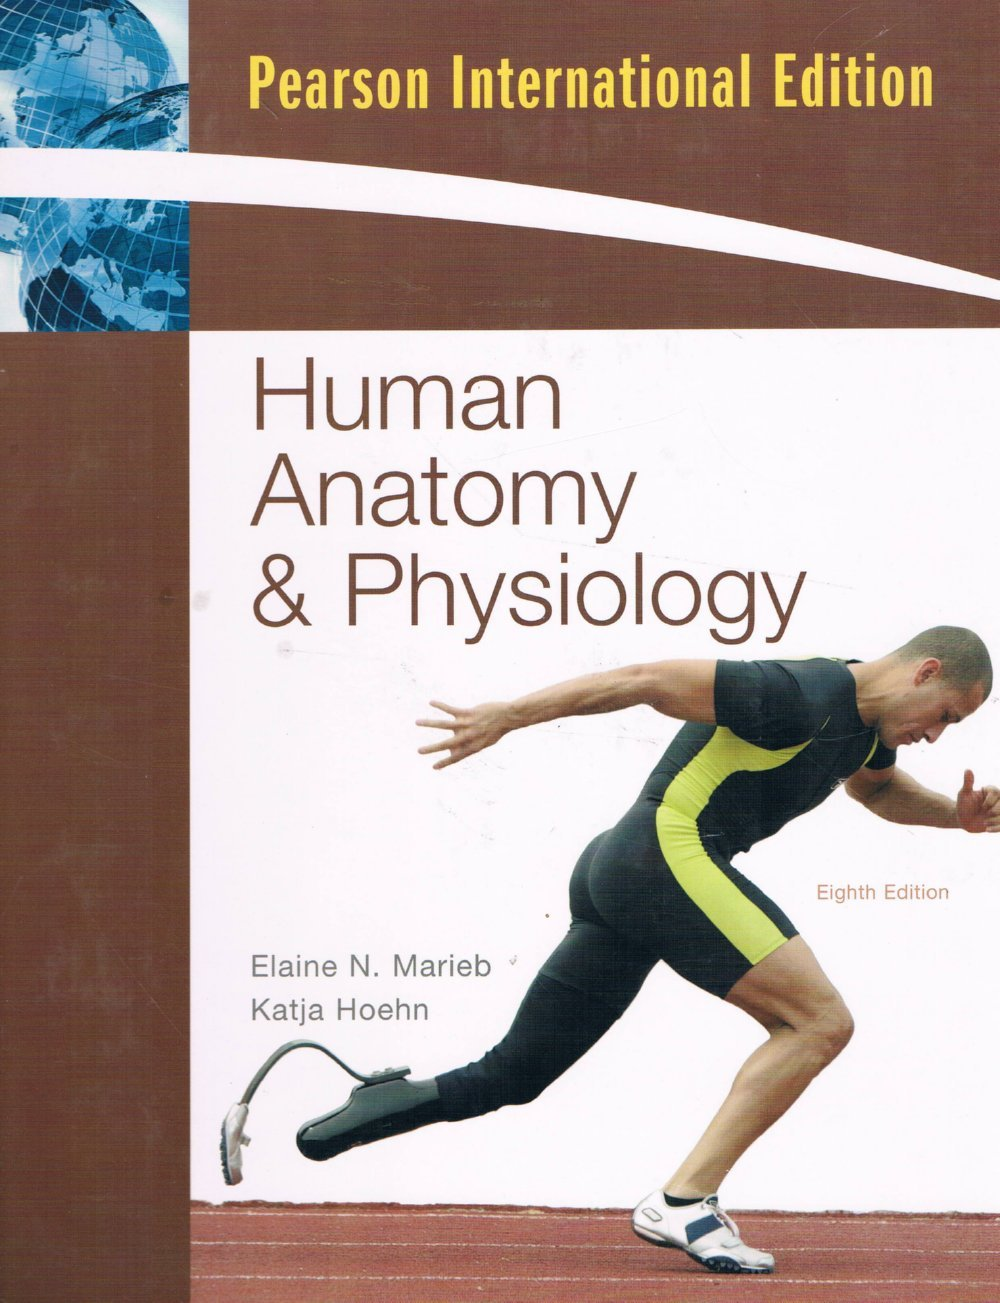 Human Anatomy and Physiology: Elaine Marieb & Katja Hoehn ...